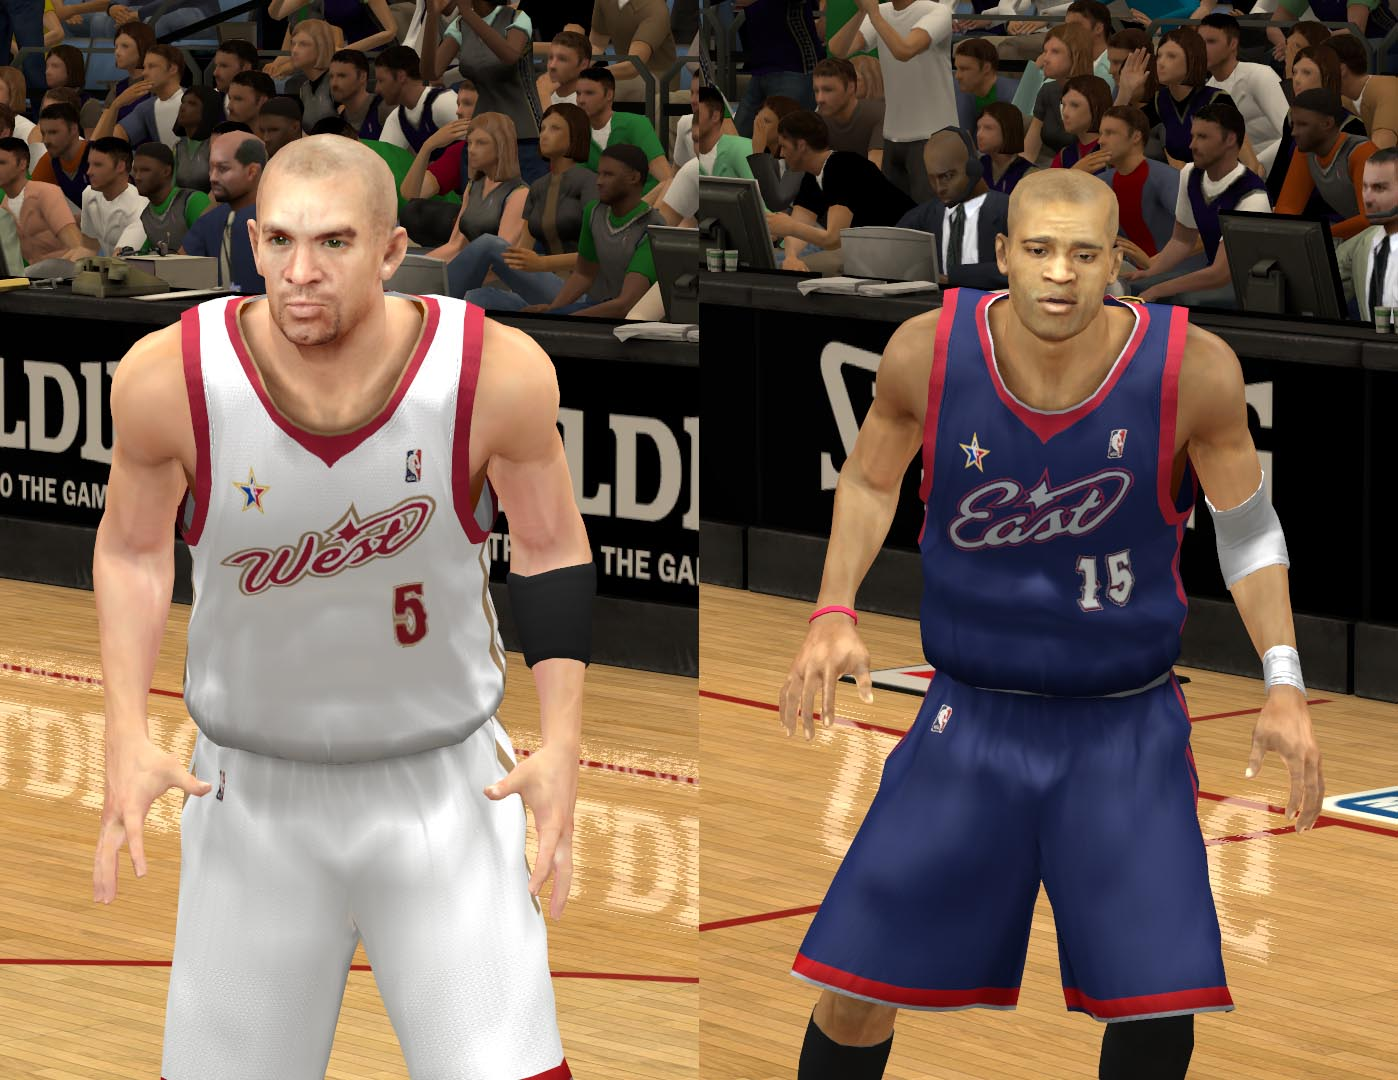 2007 All-Star Jerseys 2K13